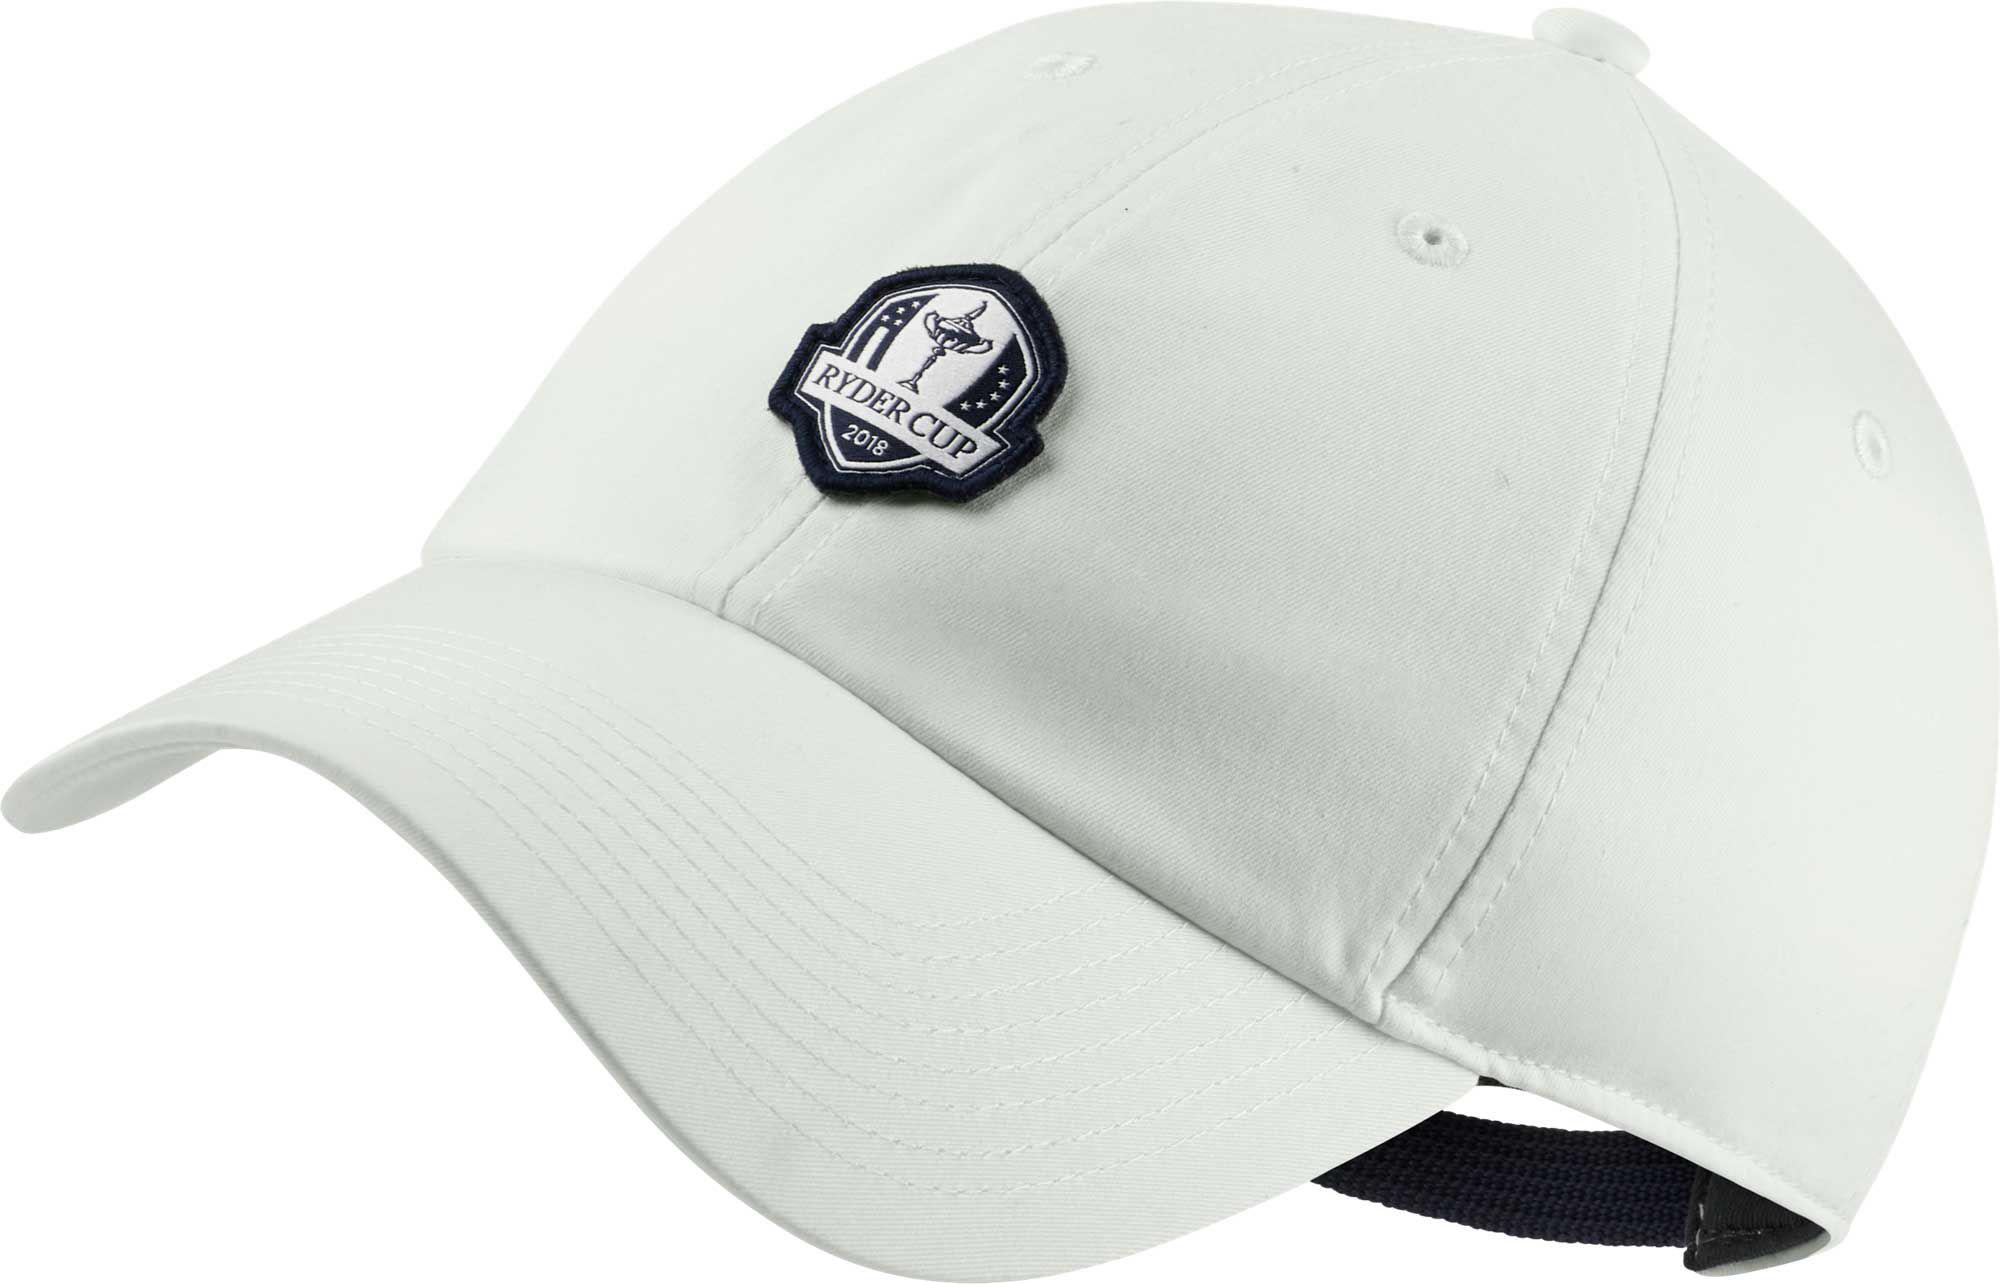 Lyst - Nike Heritage86 Ryder Cup Golf Hat in White for Men fa4916ff9278